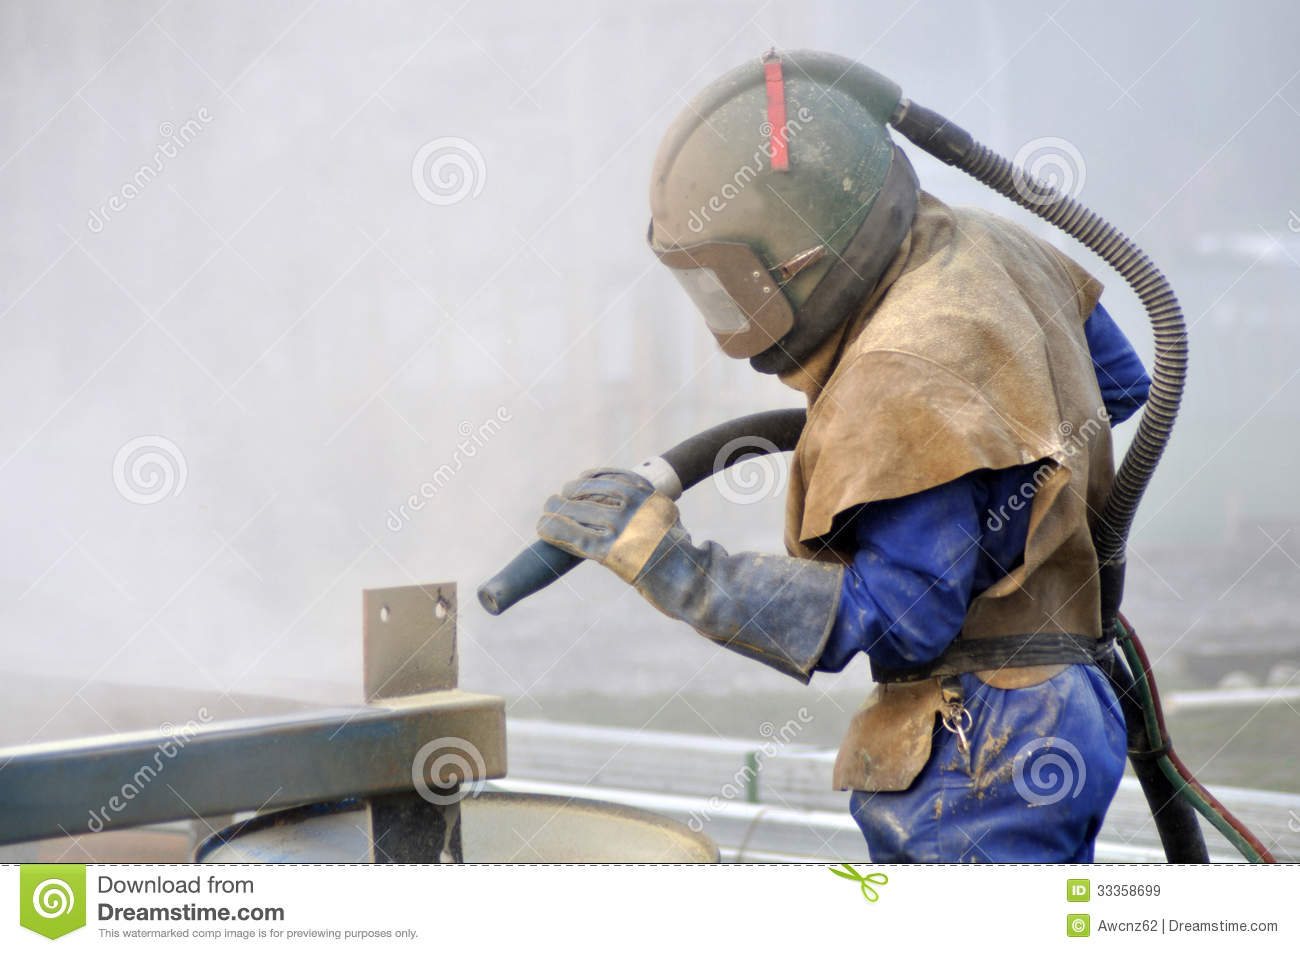 1172038 in addition Watch as well 62942 moreover Stock Photography High Pressure Washer Image23325302 furthermore 2480788. on pressure washer clip art